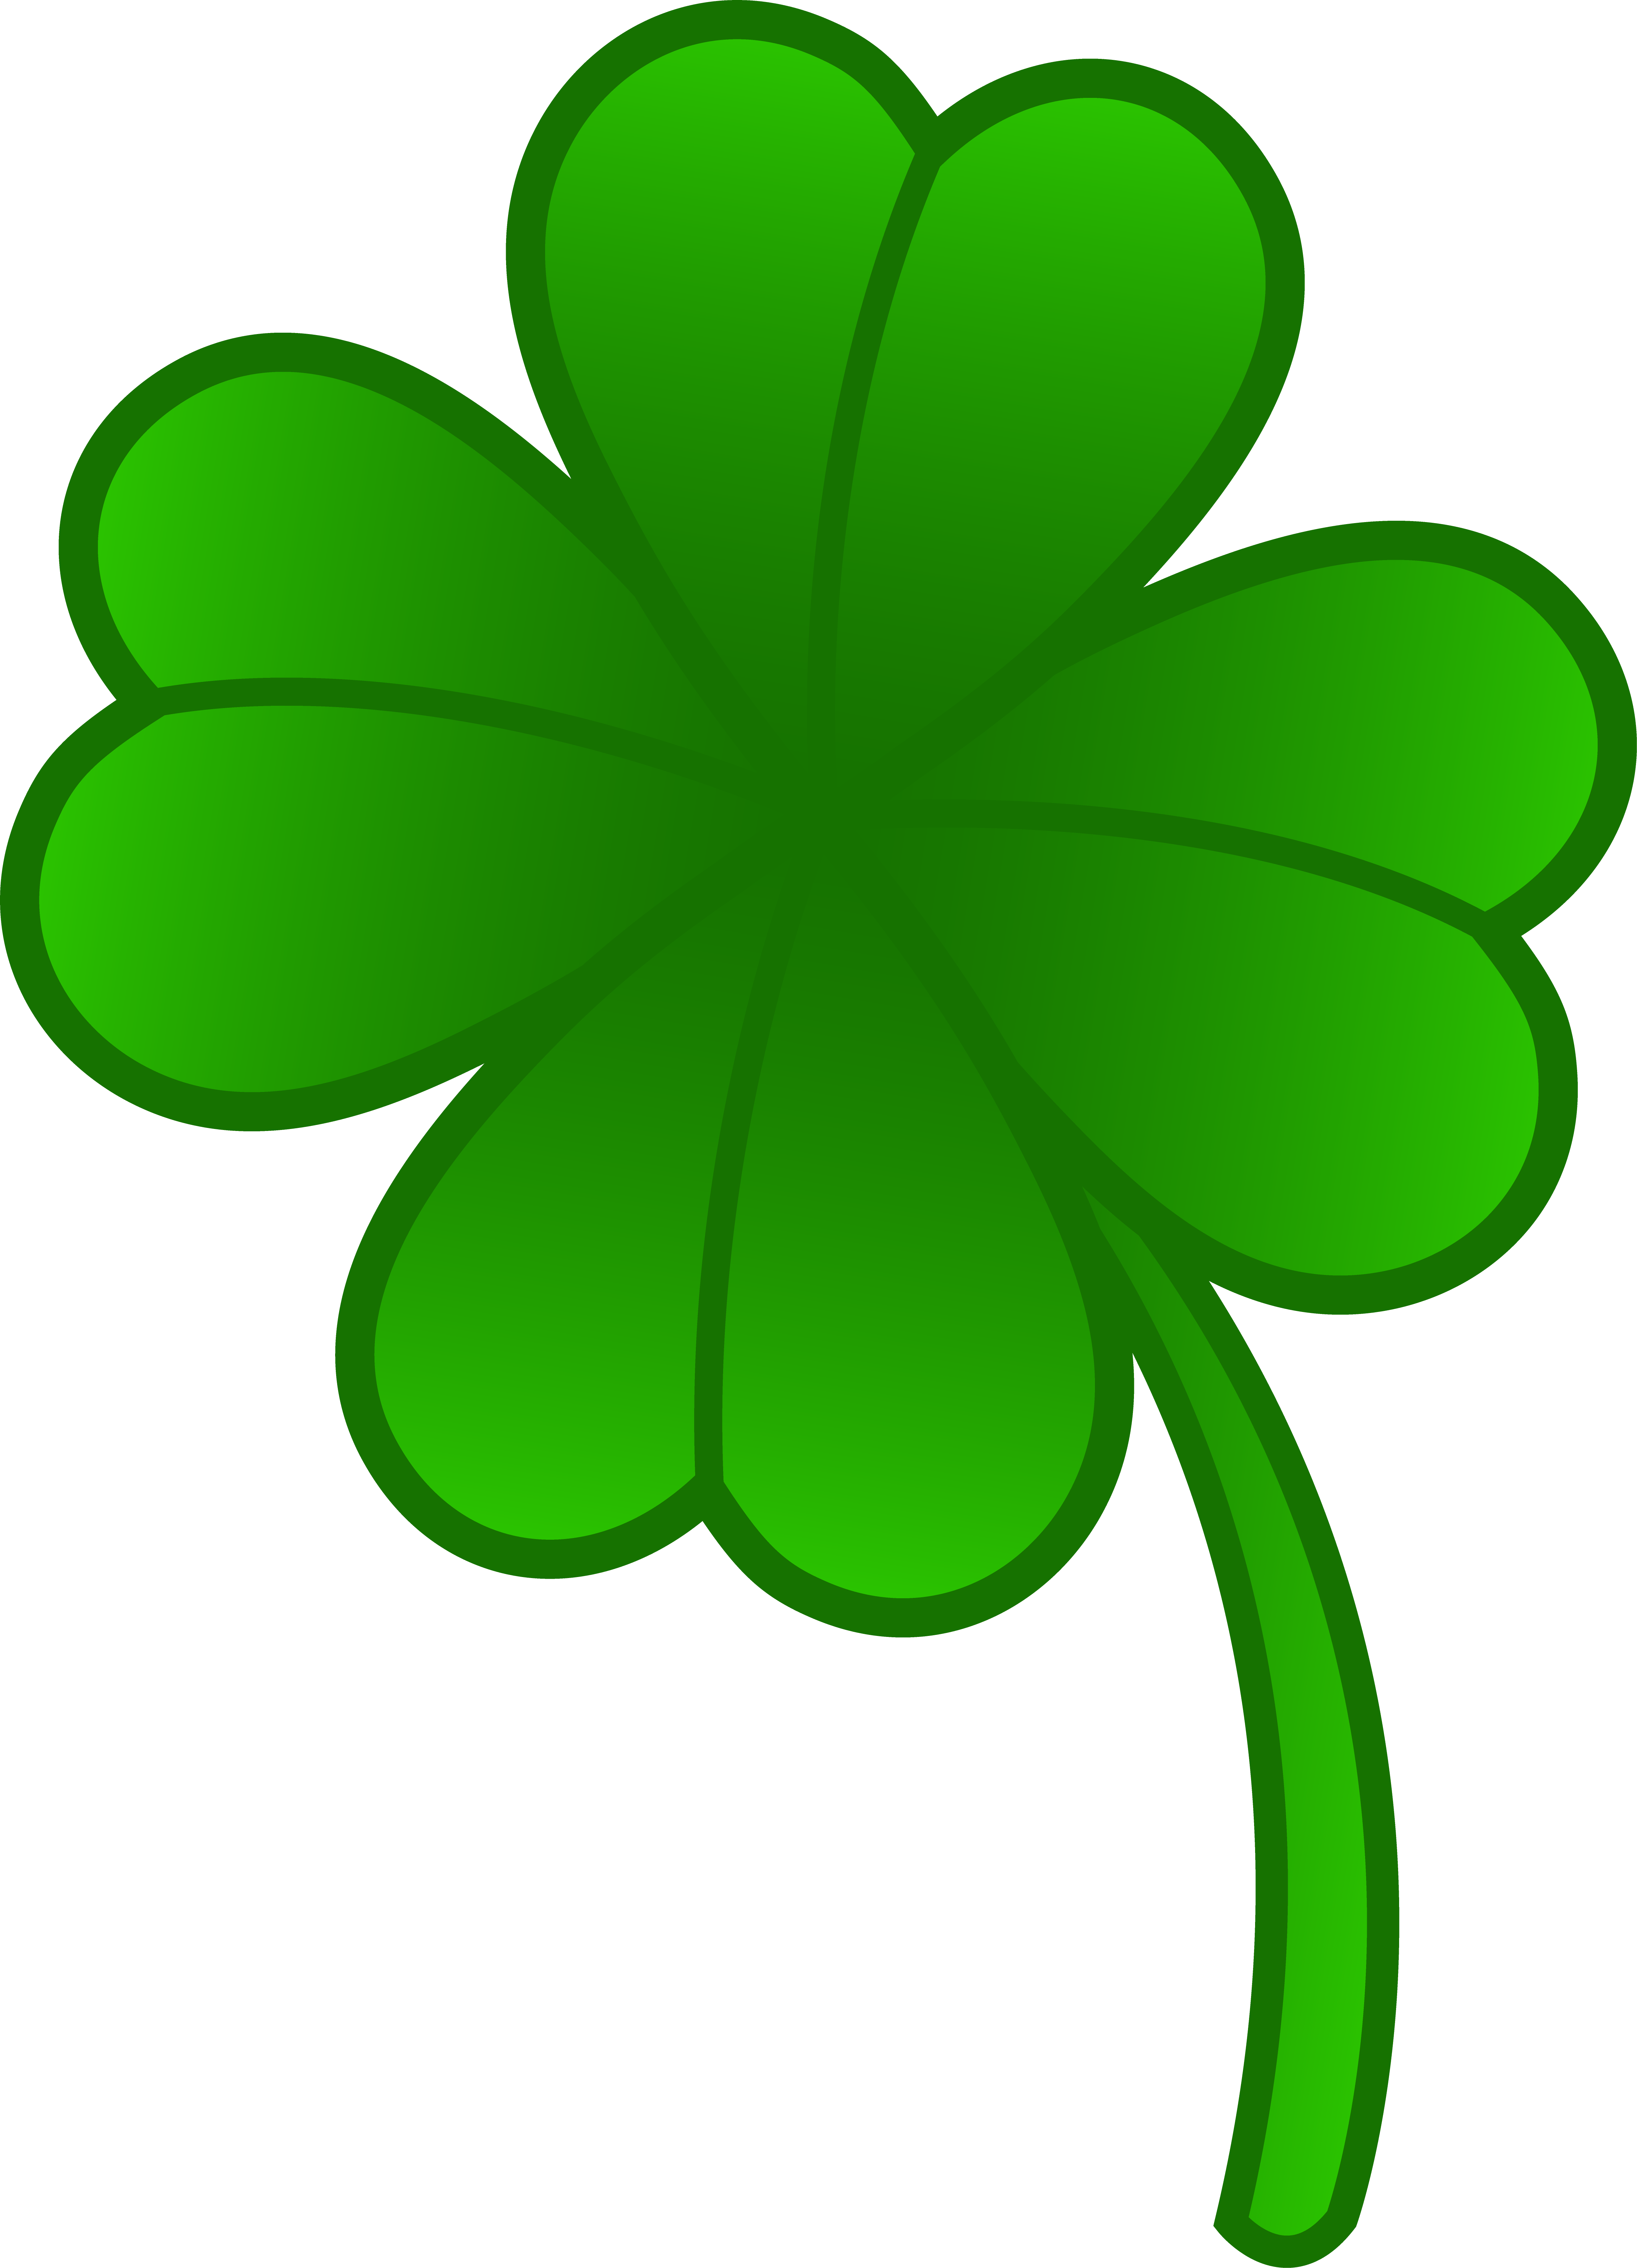 Collection of free clivers. Irish clipart four leaf clover clipart black and white library